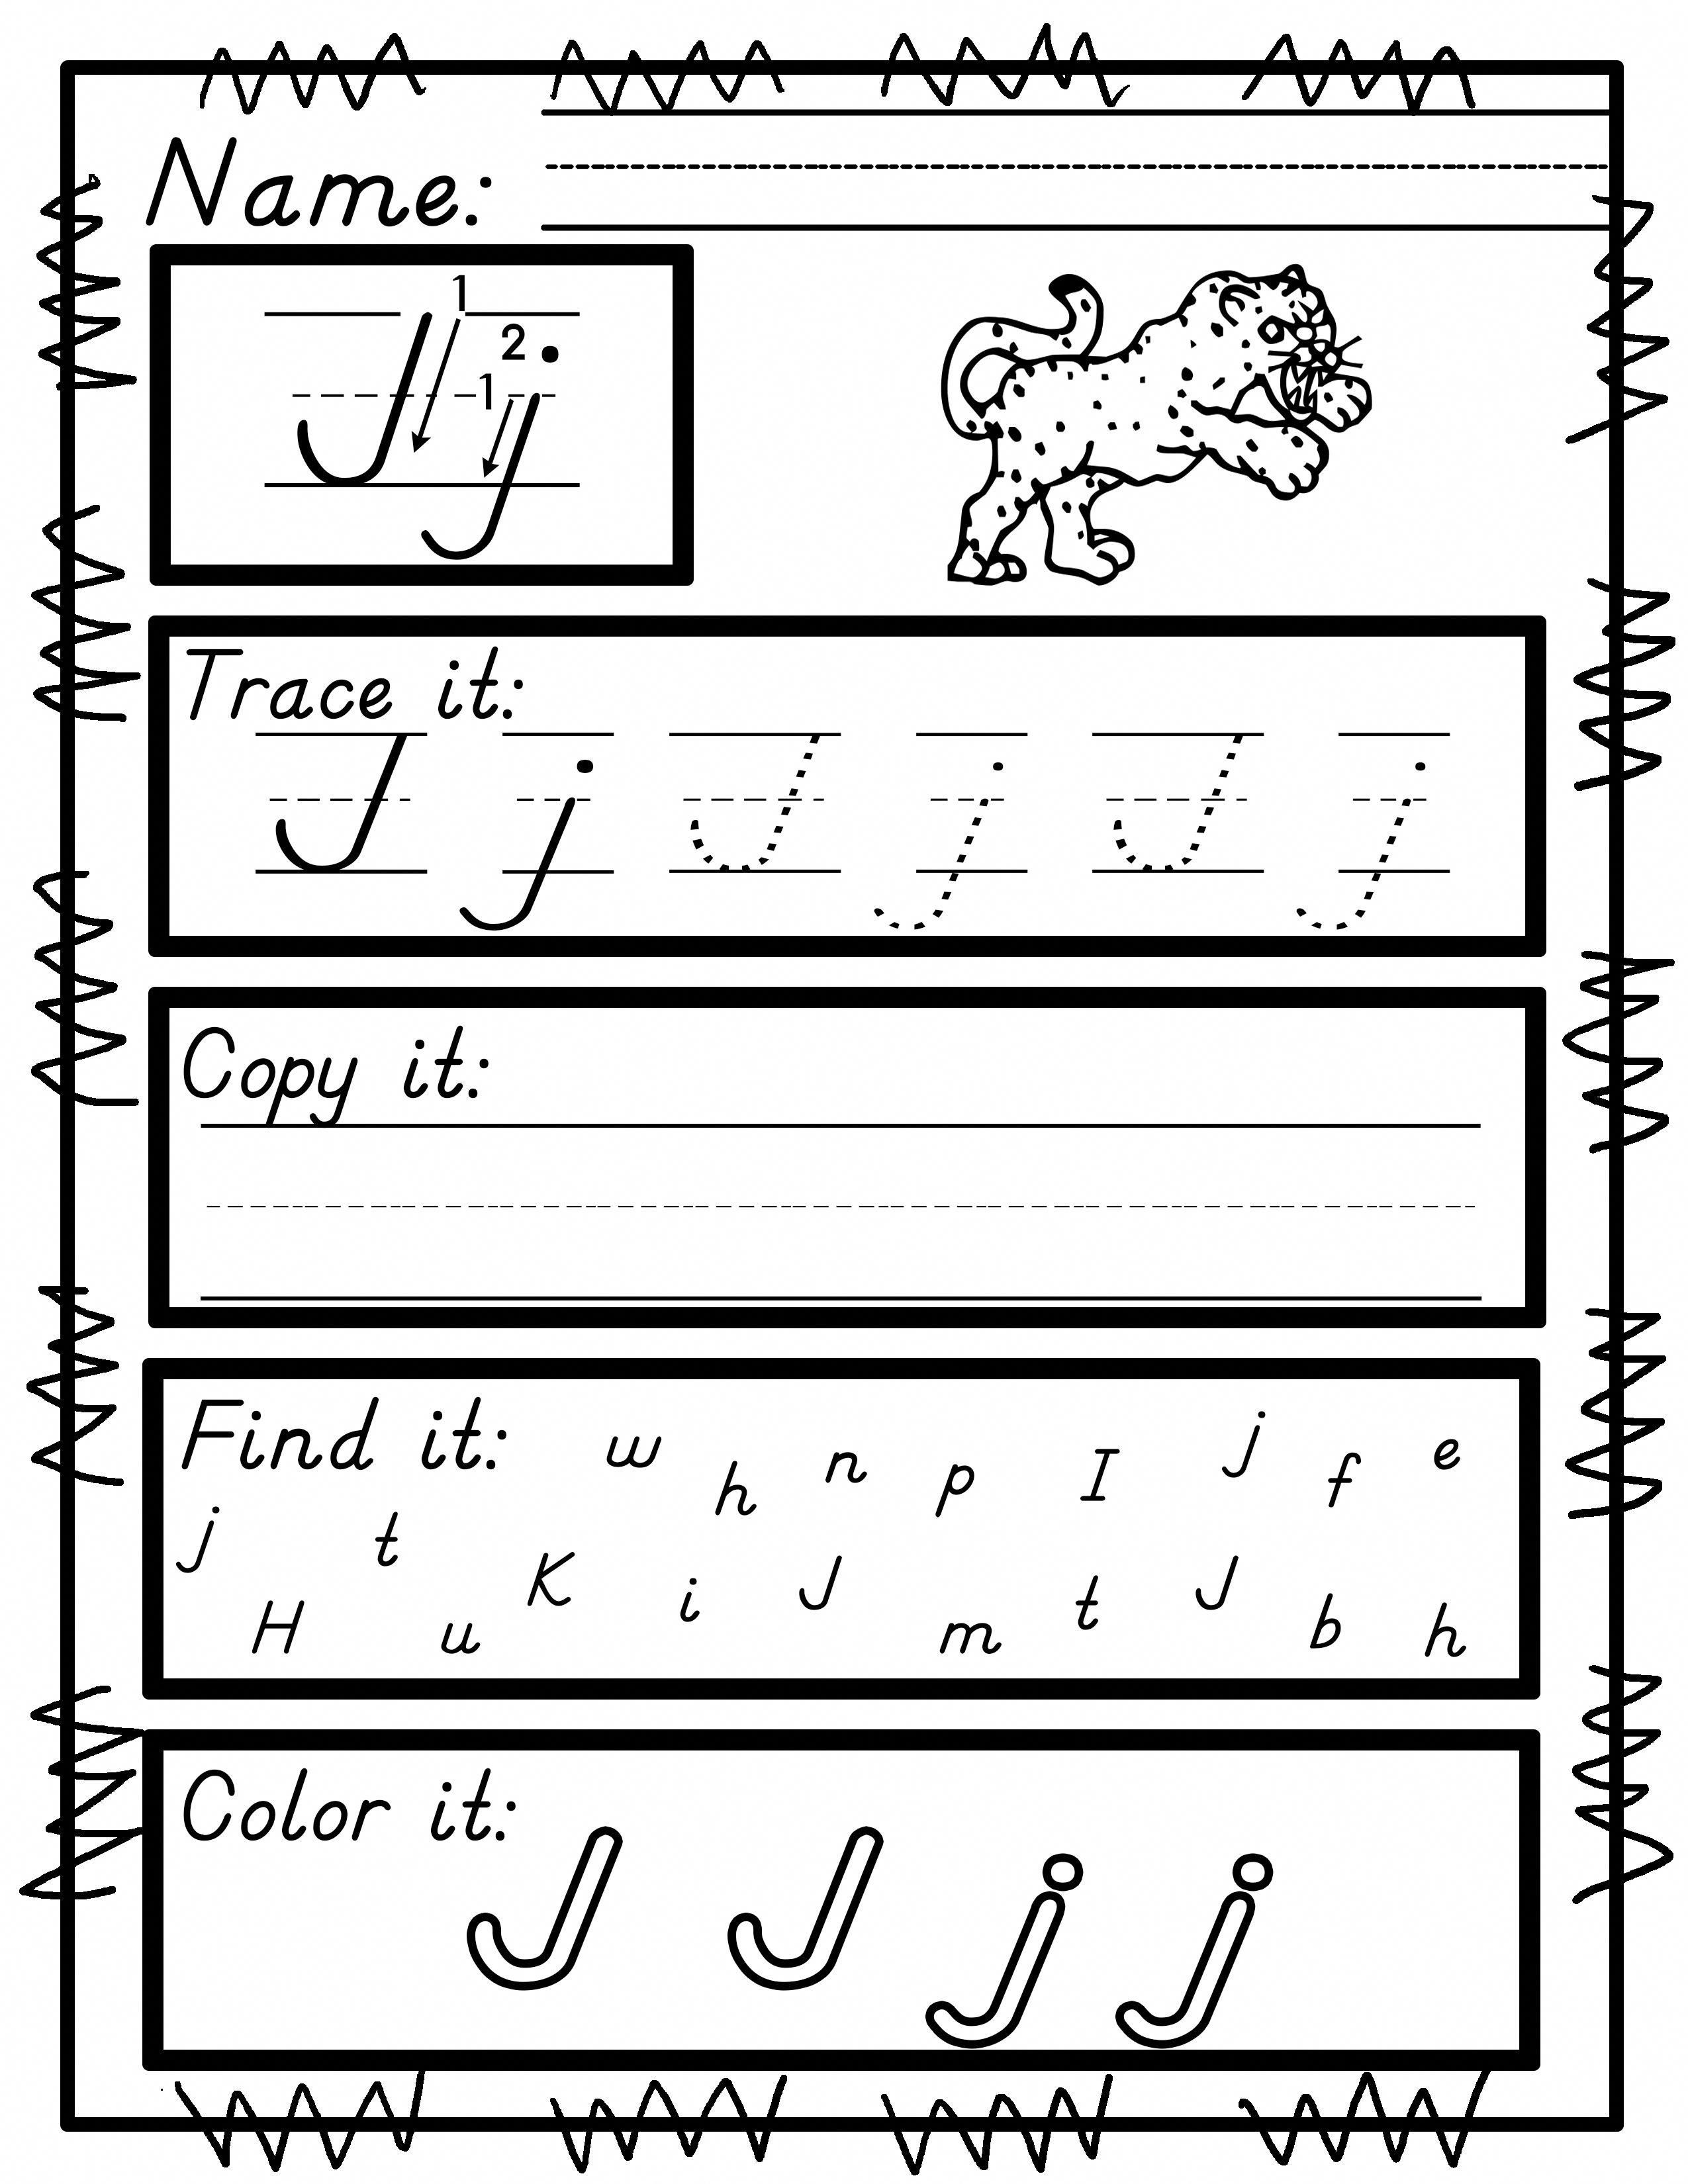 Practice Handwriting Handwritingimprovement